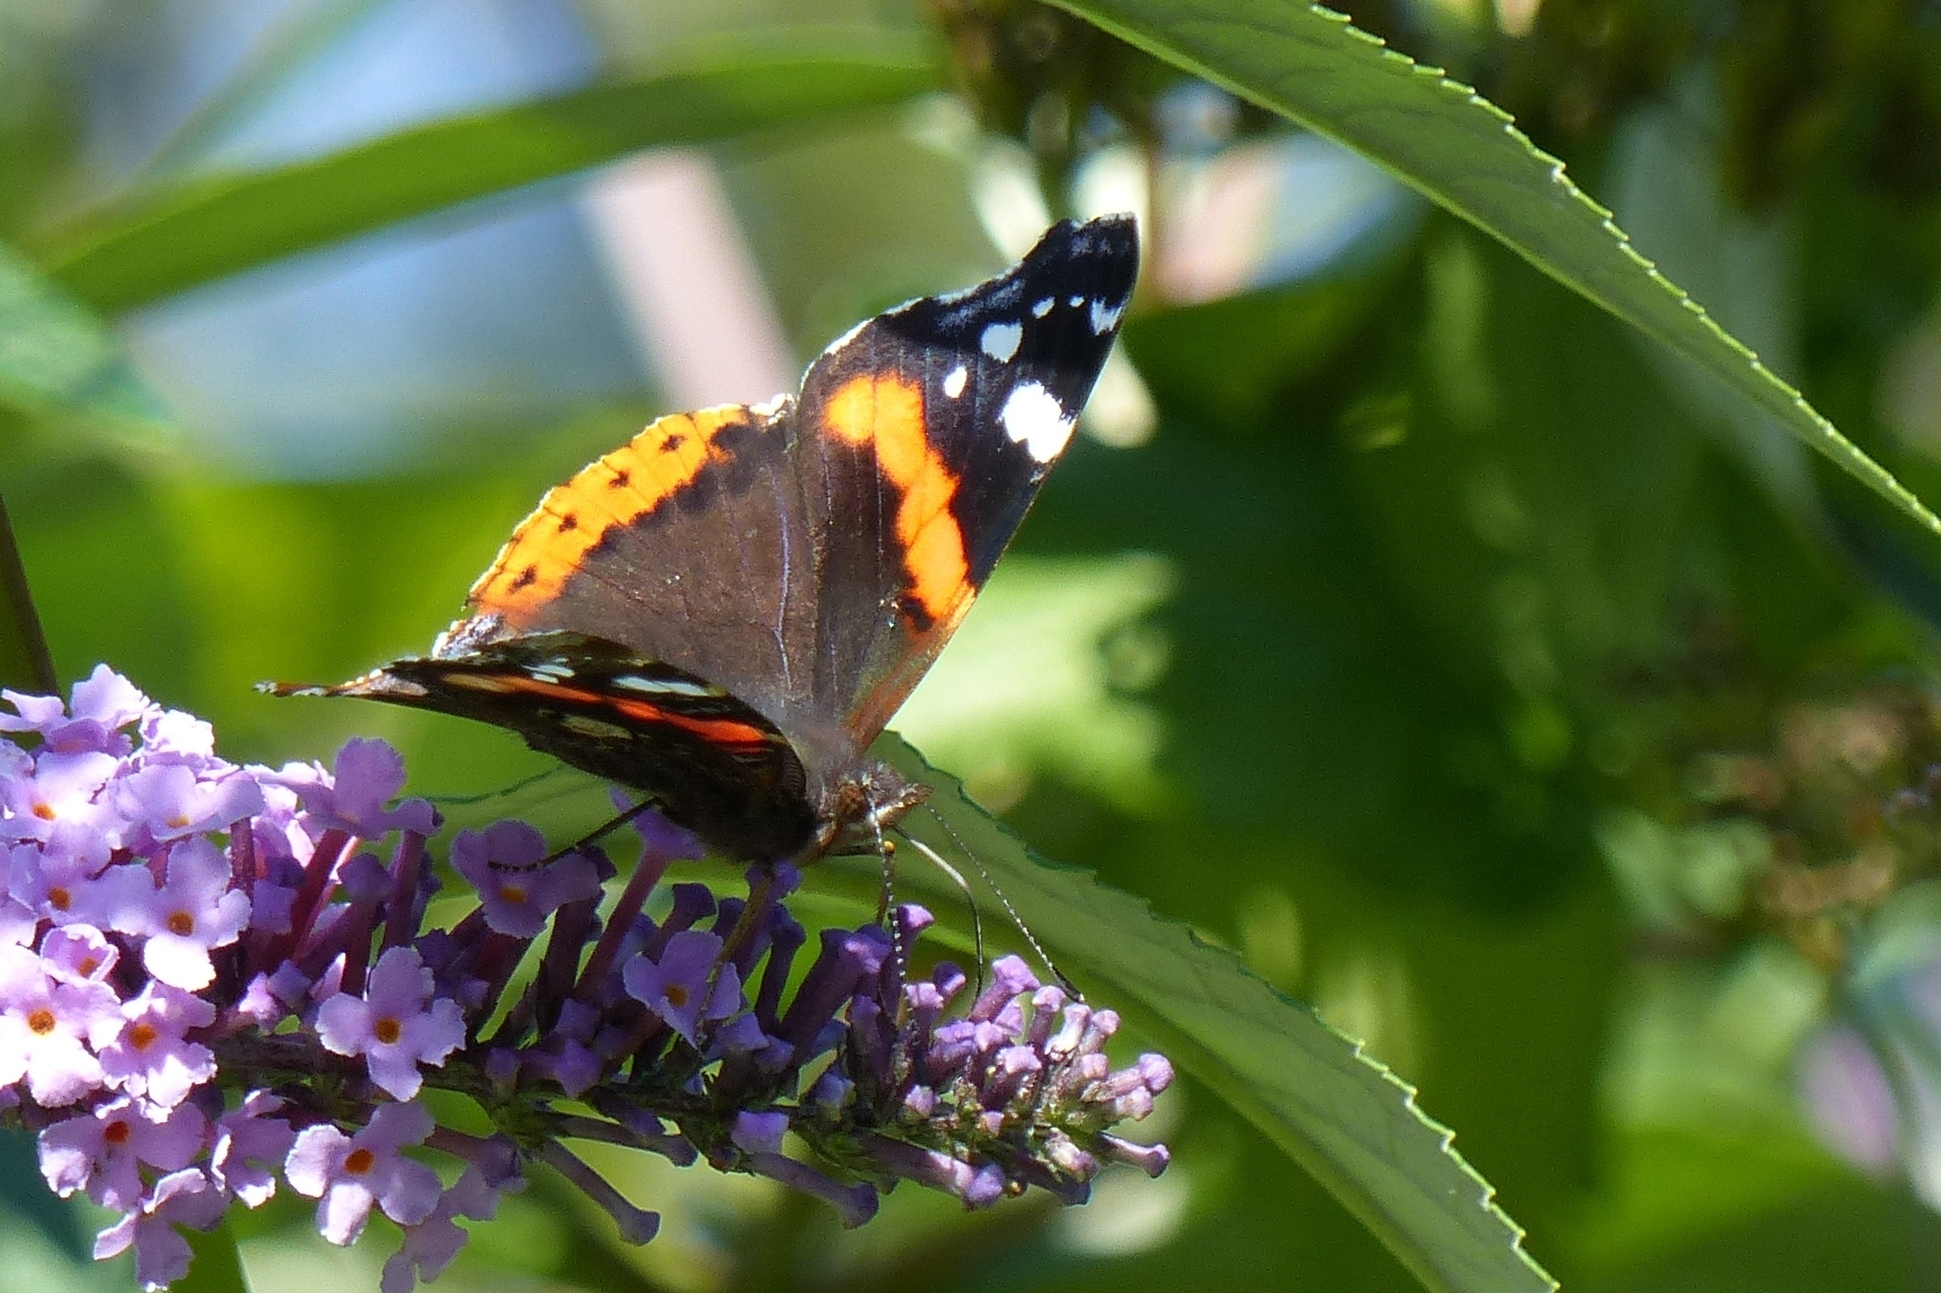 Red admiral butterfly. Photo by Jim Butler